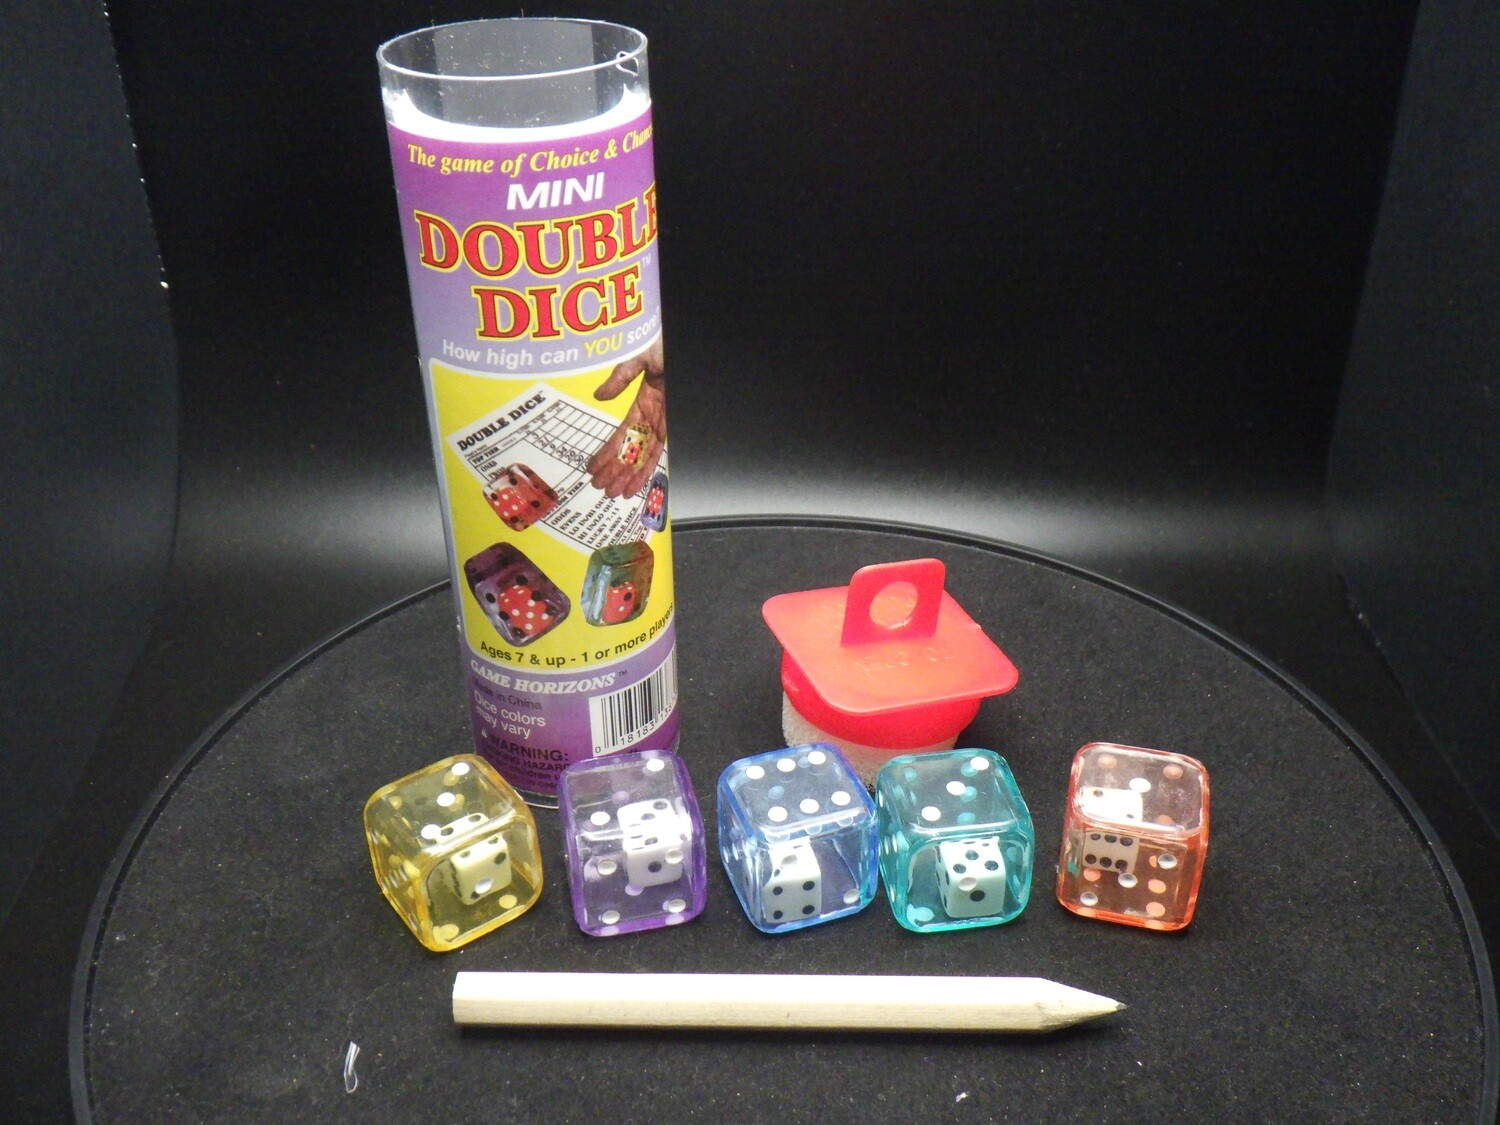 Double Dice Game - Instructions with 5 Dice Tabletop Gaming - Mini Dice Inside Dice D6 RPG Roleplay Gaming Cards Board CCG